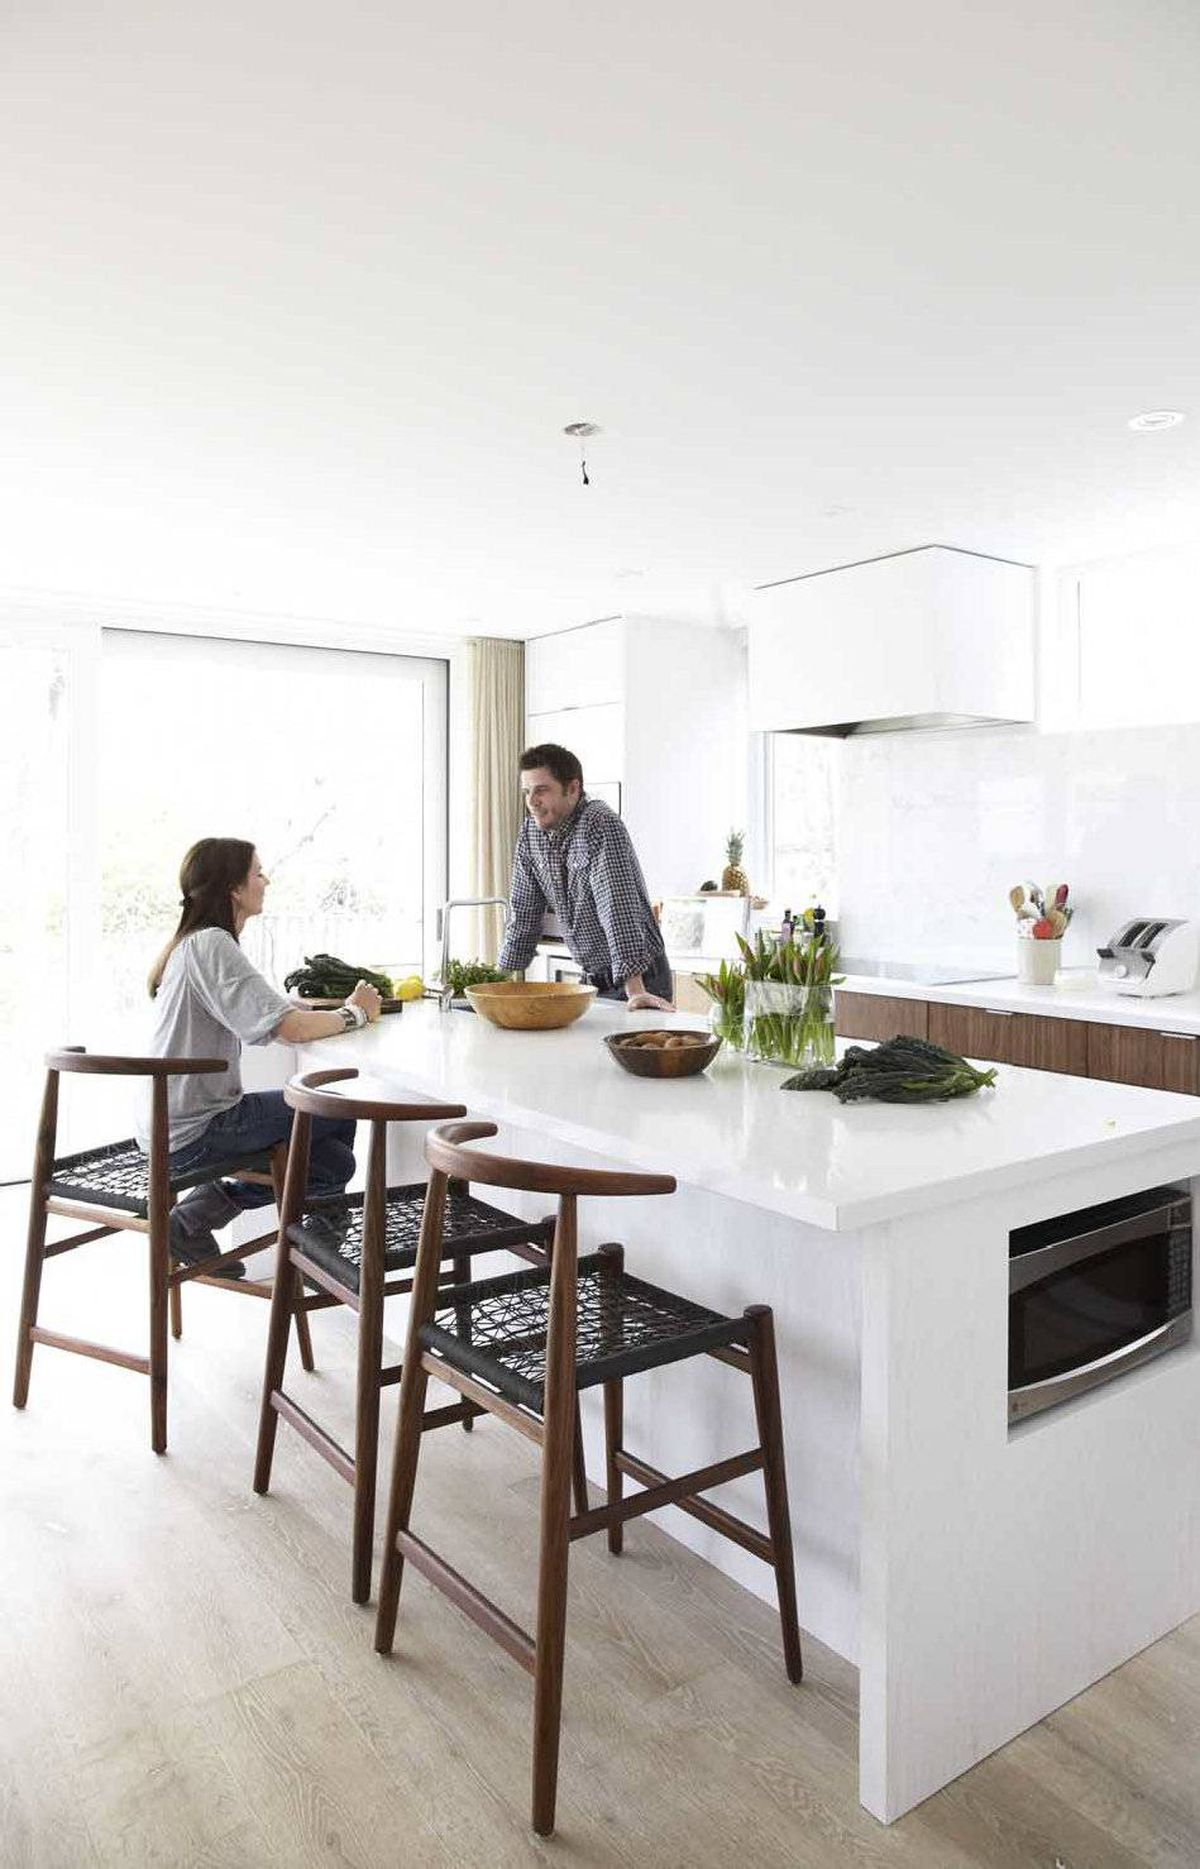 When John and Patsy Bell designed their kitchen, environmental sensitivity and their young family were top of mind.